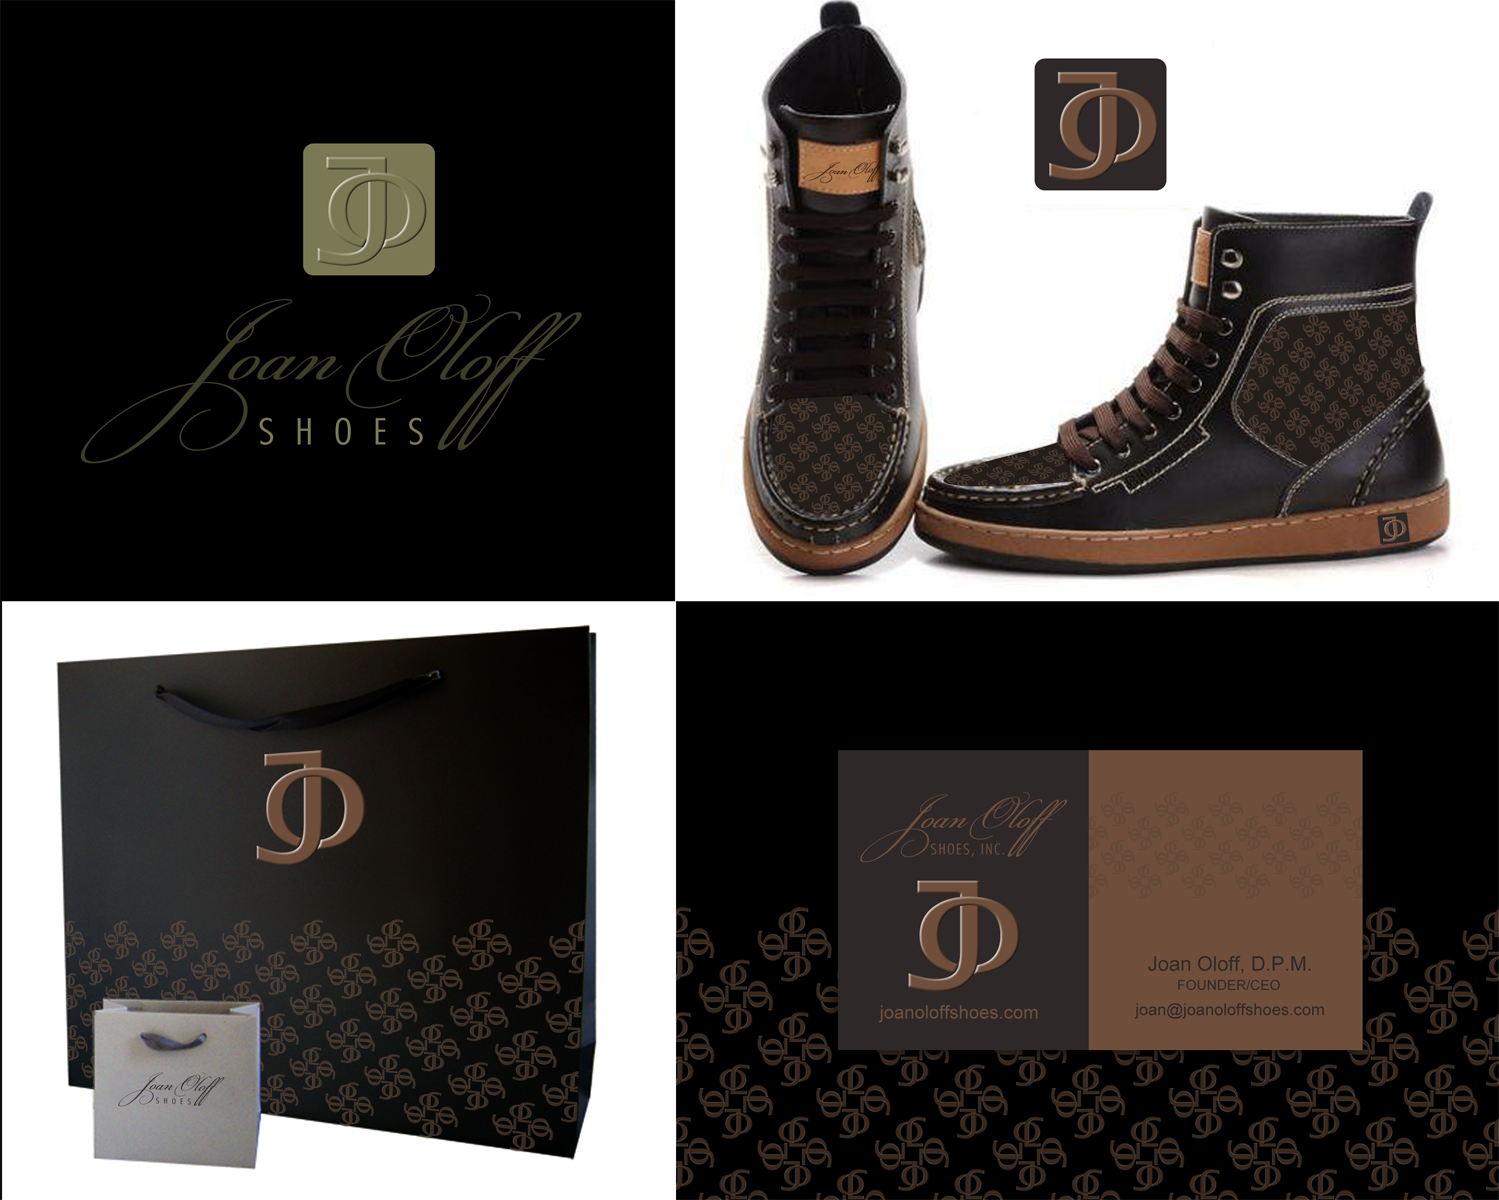 Create the next logo and business card for Joan Oloff Shoes